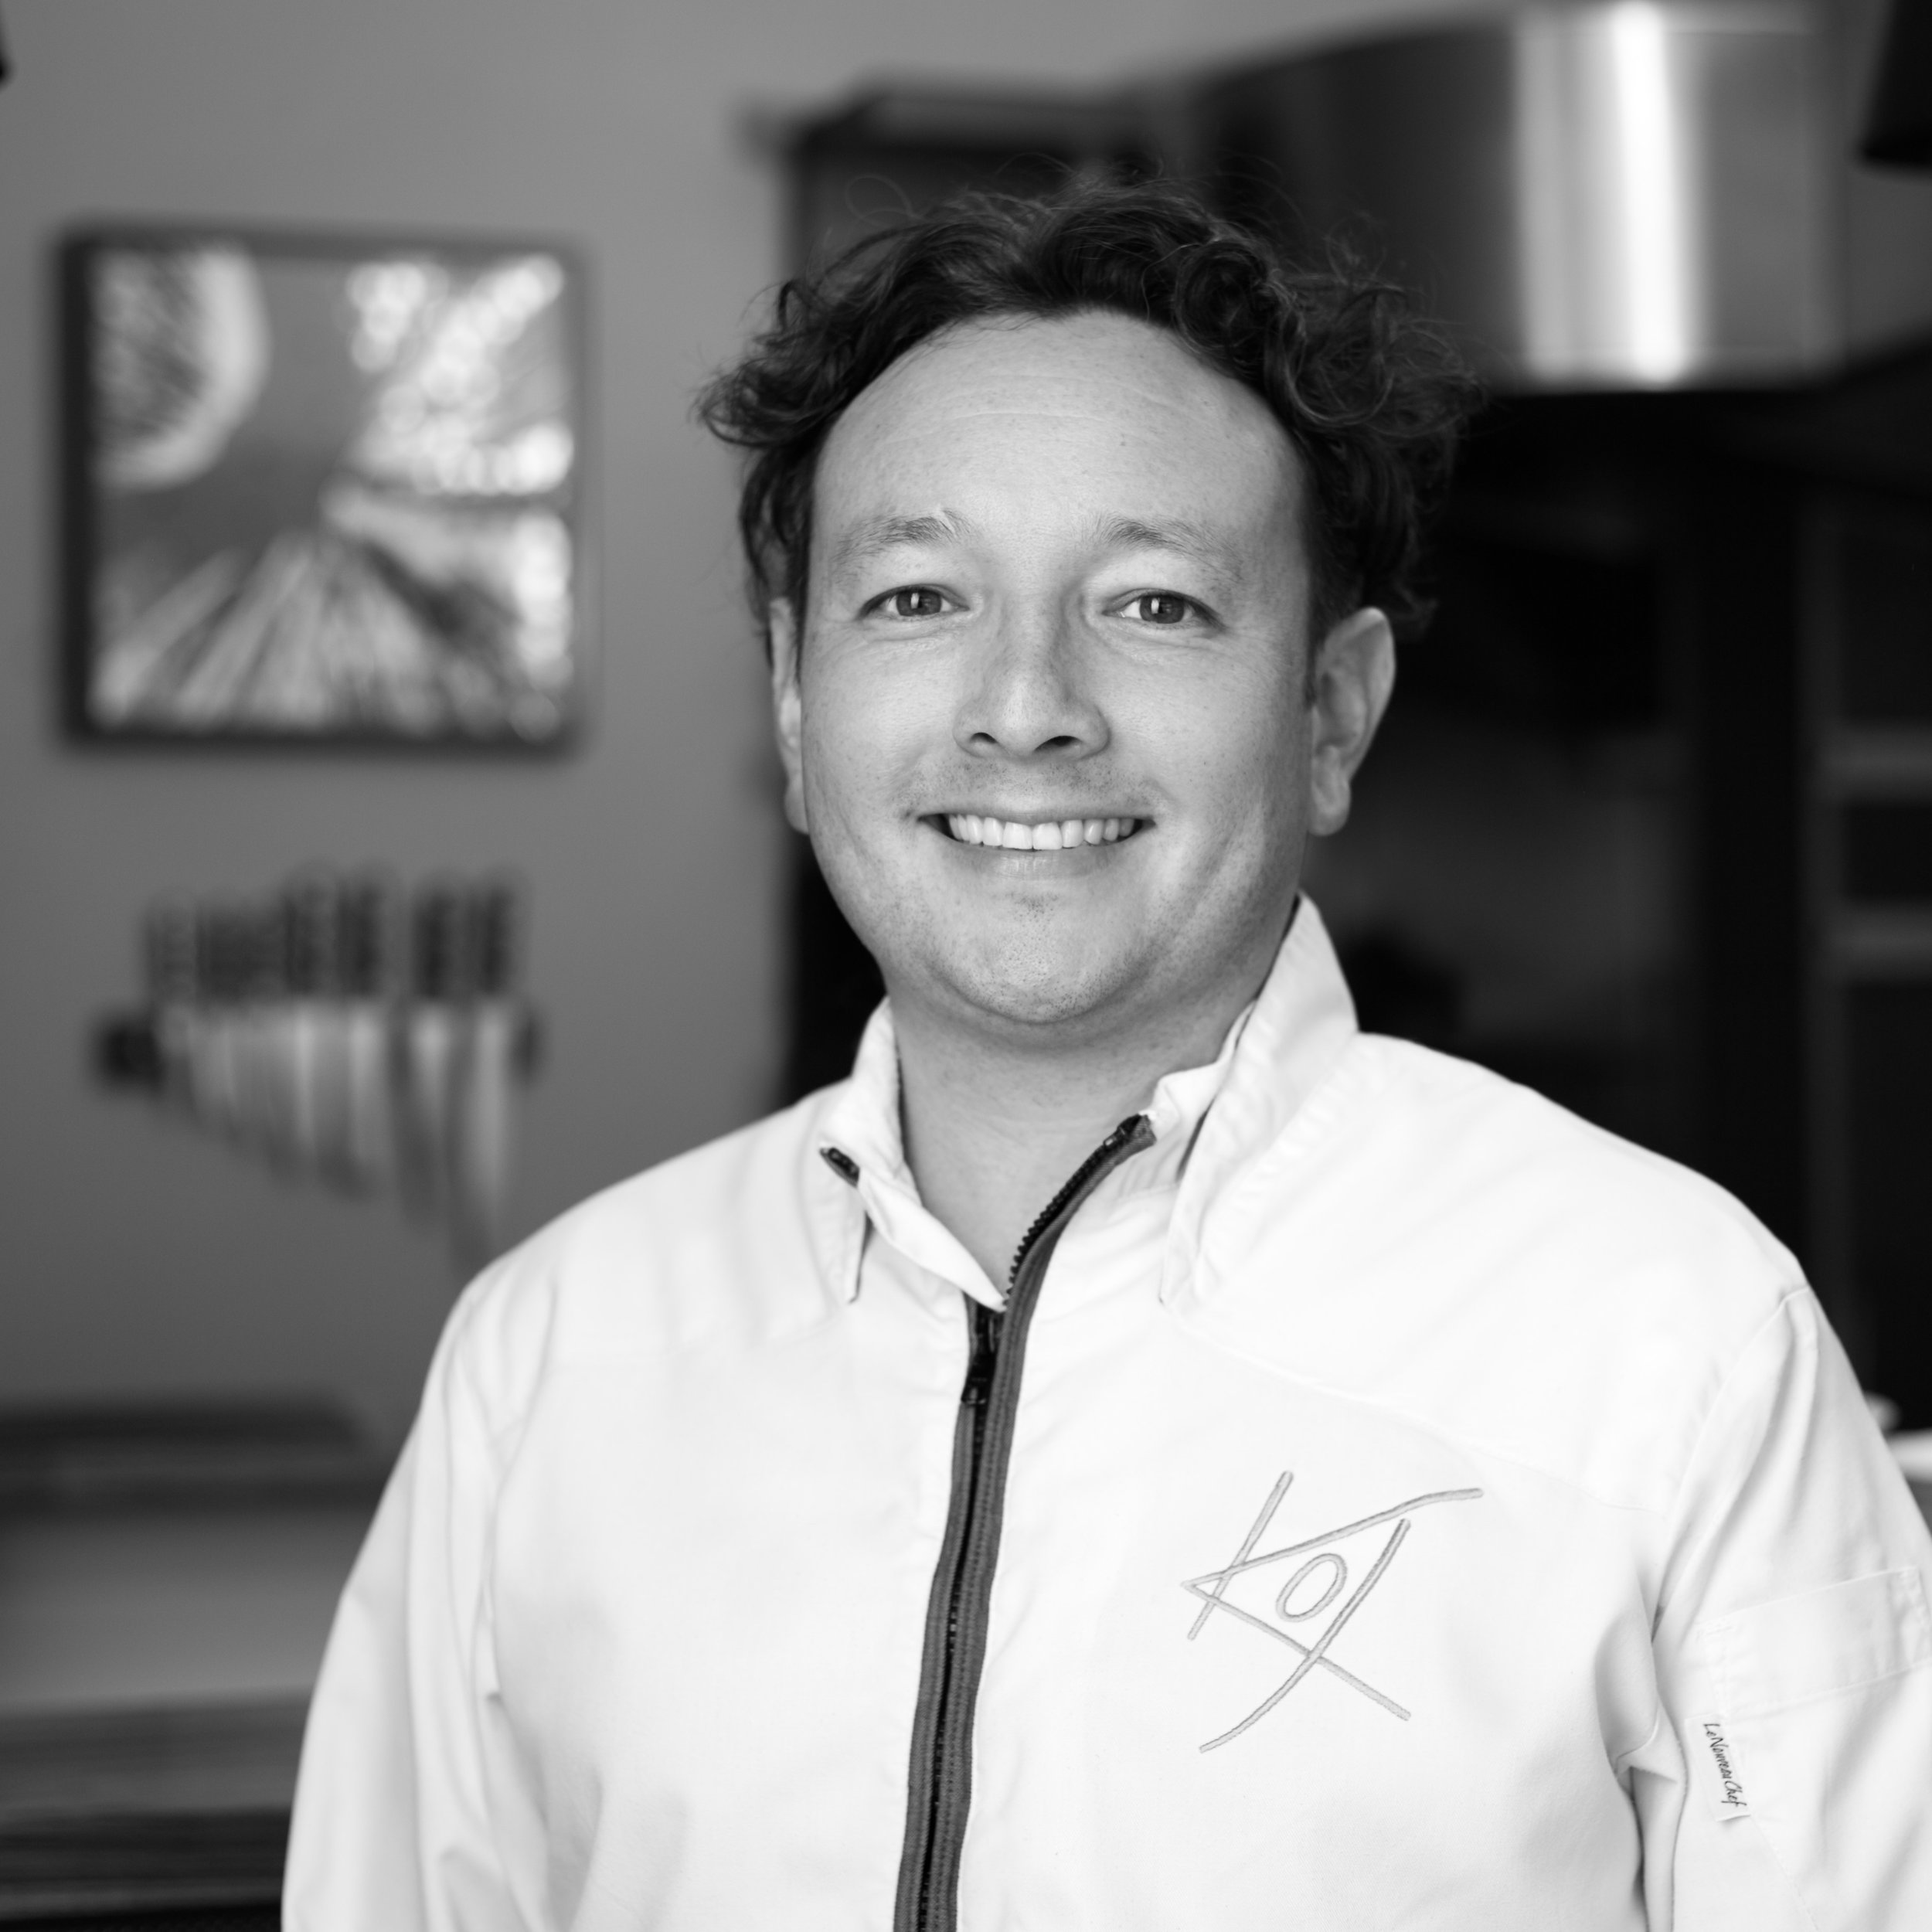 KojExecutive Chef - Koj is half-Japanese, half-Scottish and turned his passion into his career after reaching the final of BBC1's MasterChef. He began with fast track training Royal Hospital Road, The Ledbury, Le Gavroche, Oud Sluis and Dinner by Heston, before working as a private chef and cookery teacher, including for The Queen, Eddie Redmayne, Andrew Lloyd Webber and AP McCoy, With his first restaurant, he aims to push Japanese cuisine in the UK beyond the comfort zone of sushi.Find out more about Koj at kojcooks.co.uk.